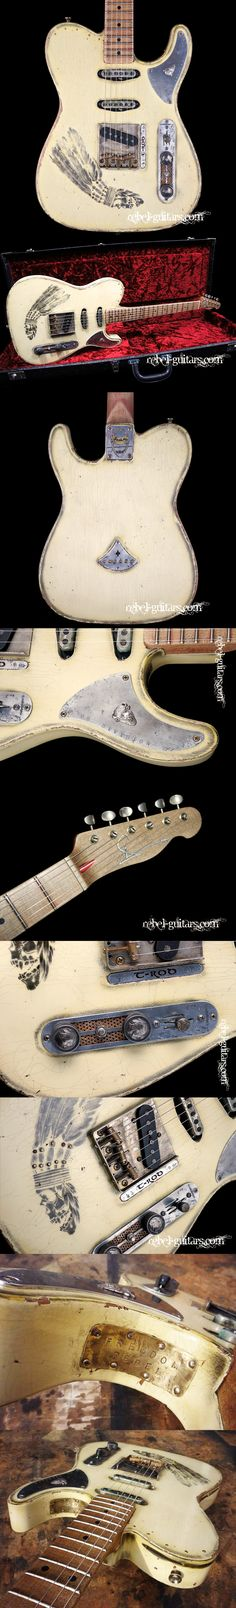 "Scala Guitars T-rod ""Indian"". More details at http://rebel-guitars.com/scala-guitars-t-rod-indian/"